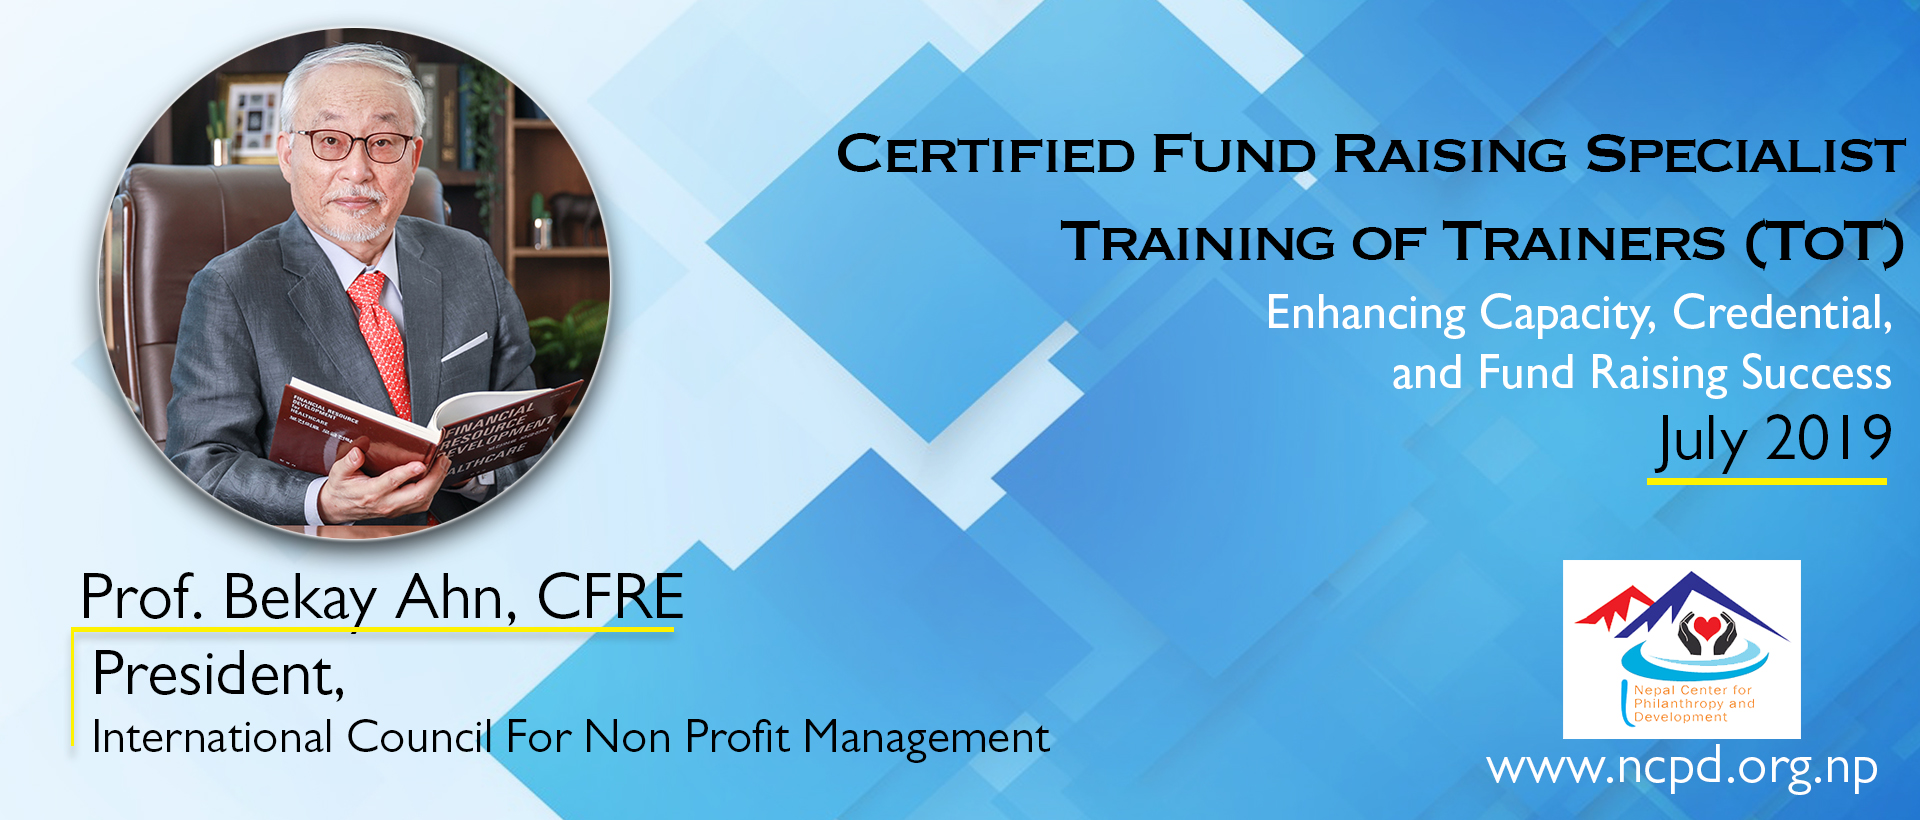 Course Announcement Certified Fund Raising Specialist (CFRS) Training of Trainers (ToT)